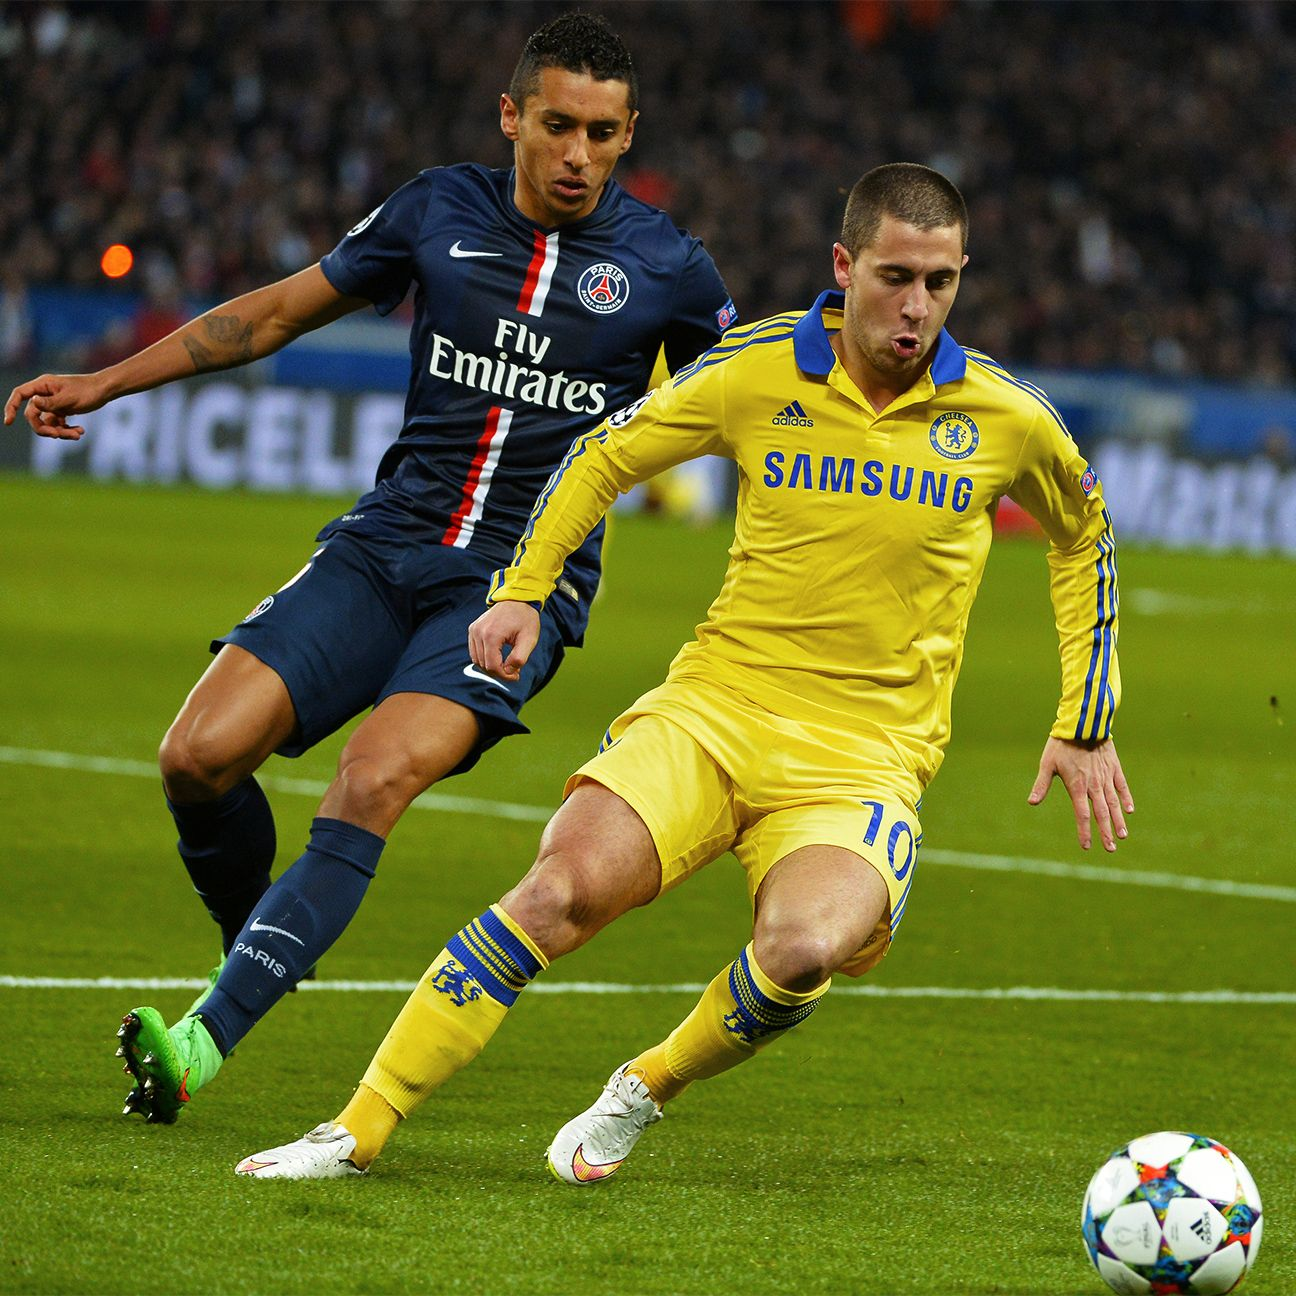 Eden Hazard was a headache all night long for the PSG defence.